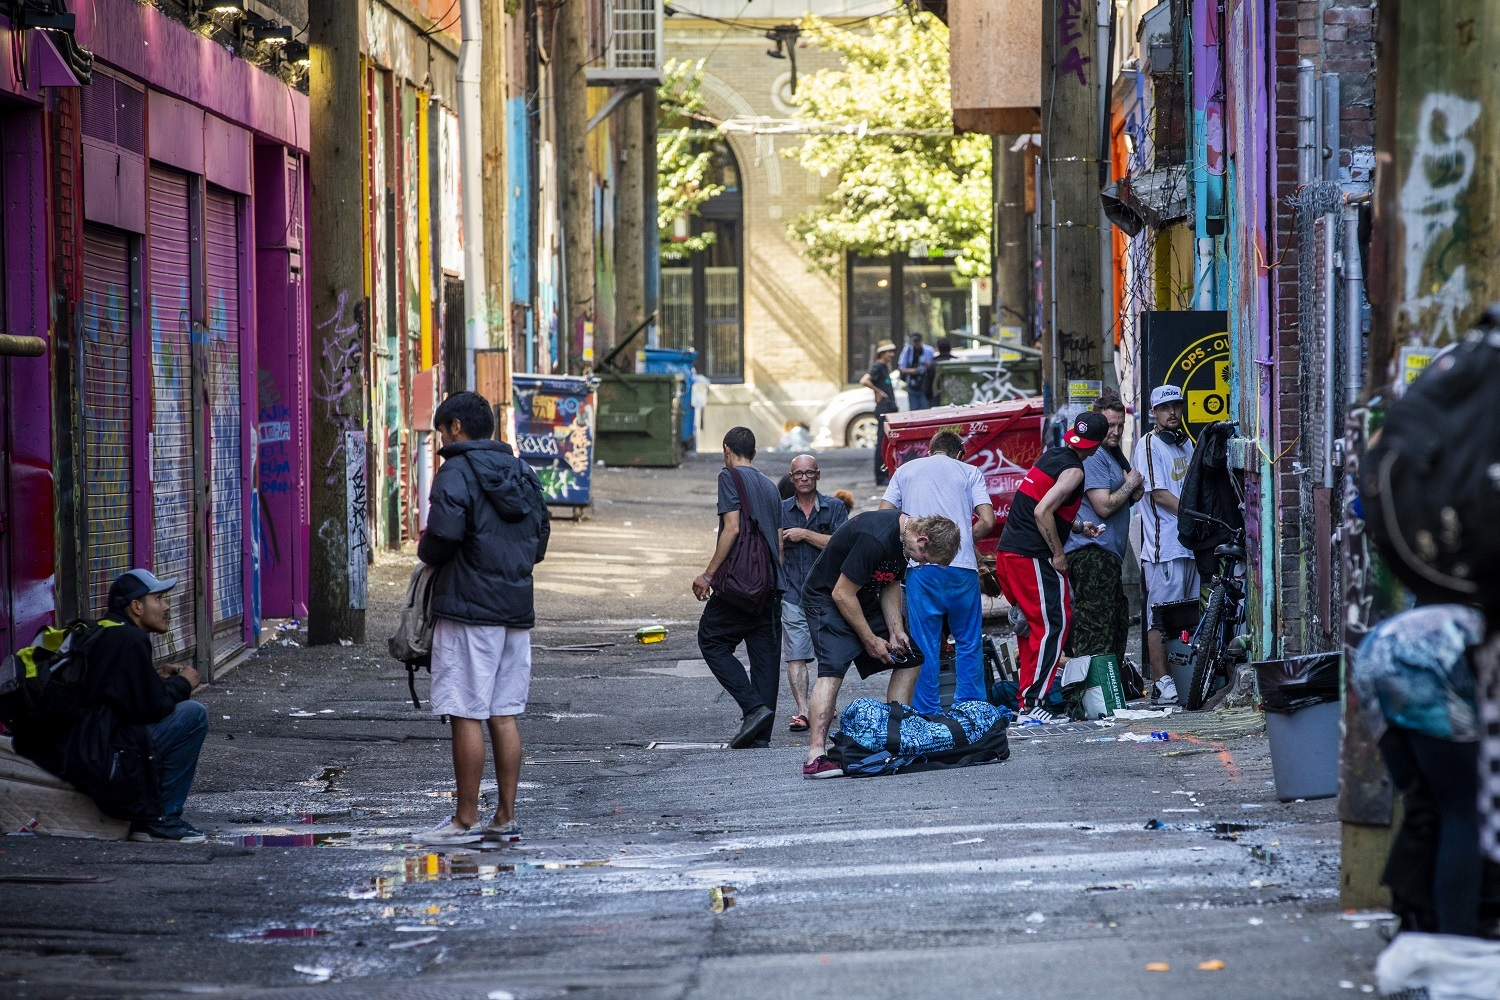 An alley behind Hastings Street in the Downtown Eastside in Vancouver, British Columbia on Friday, September 6, 2019. (Ben Nelms/CBC)